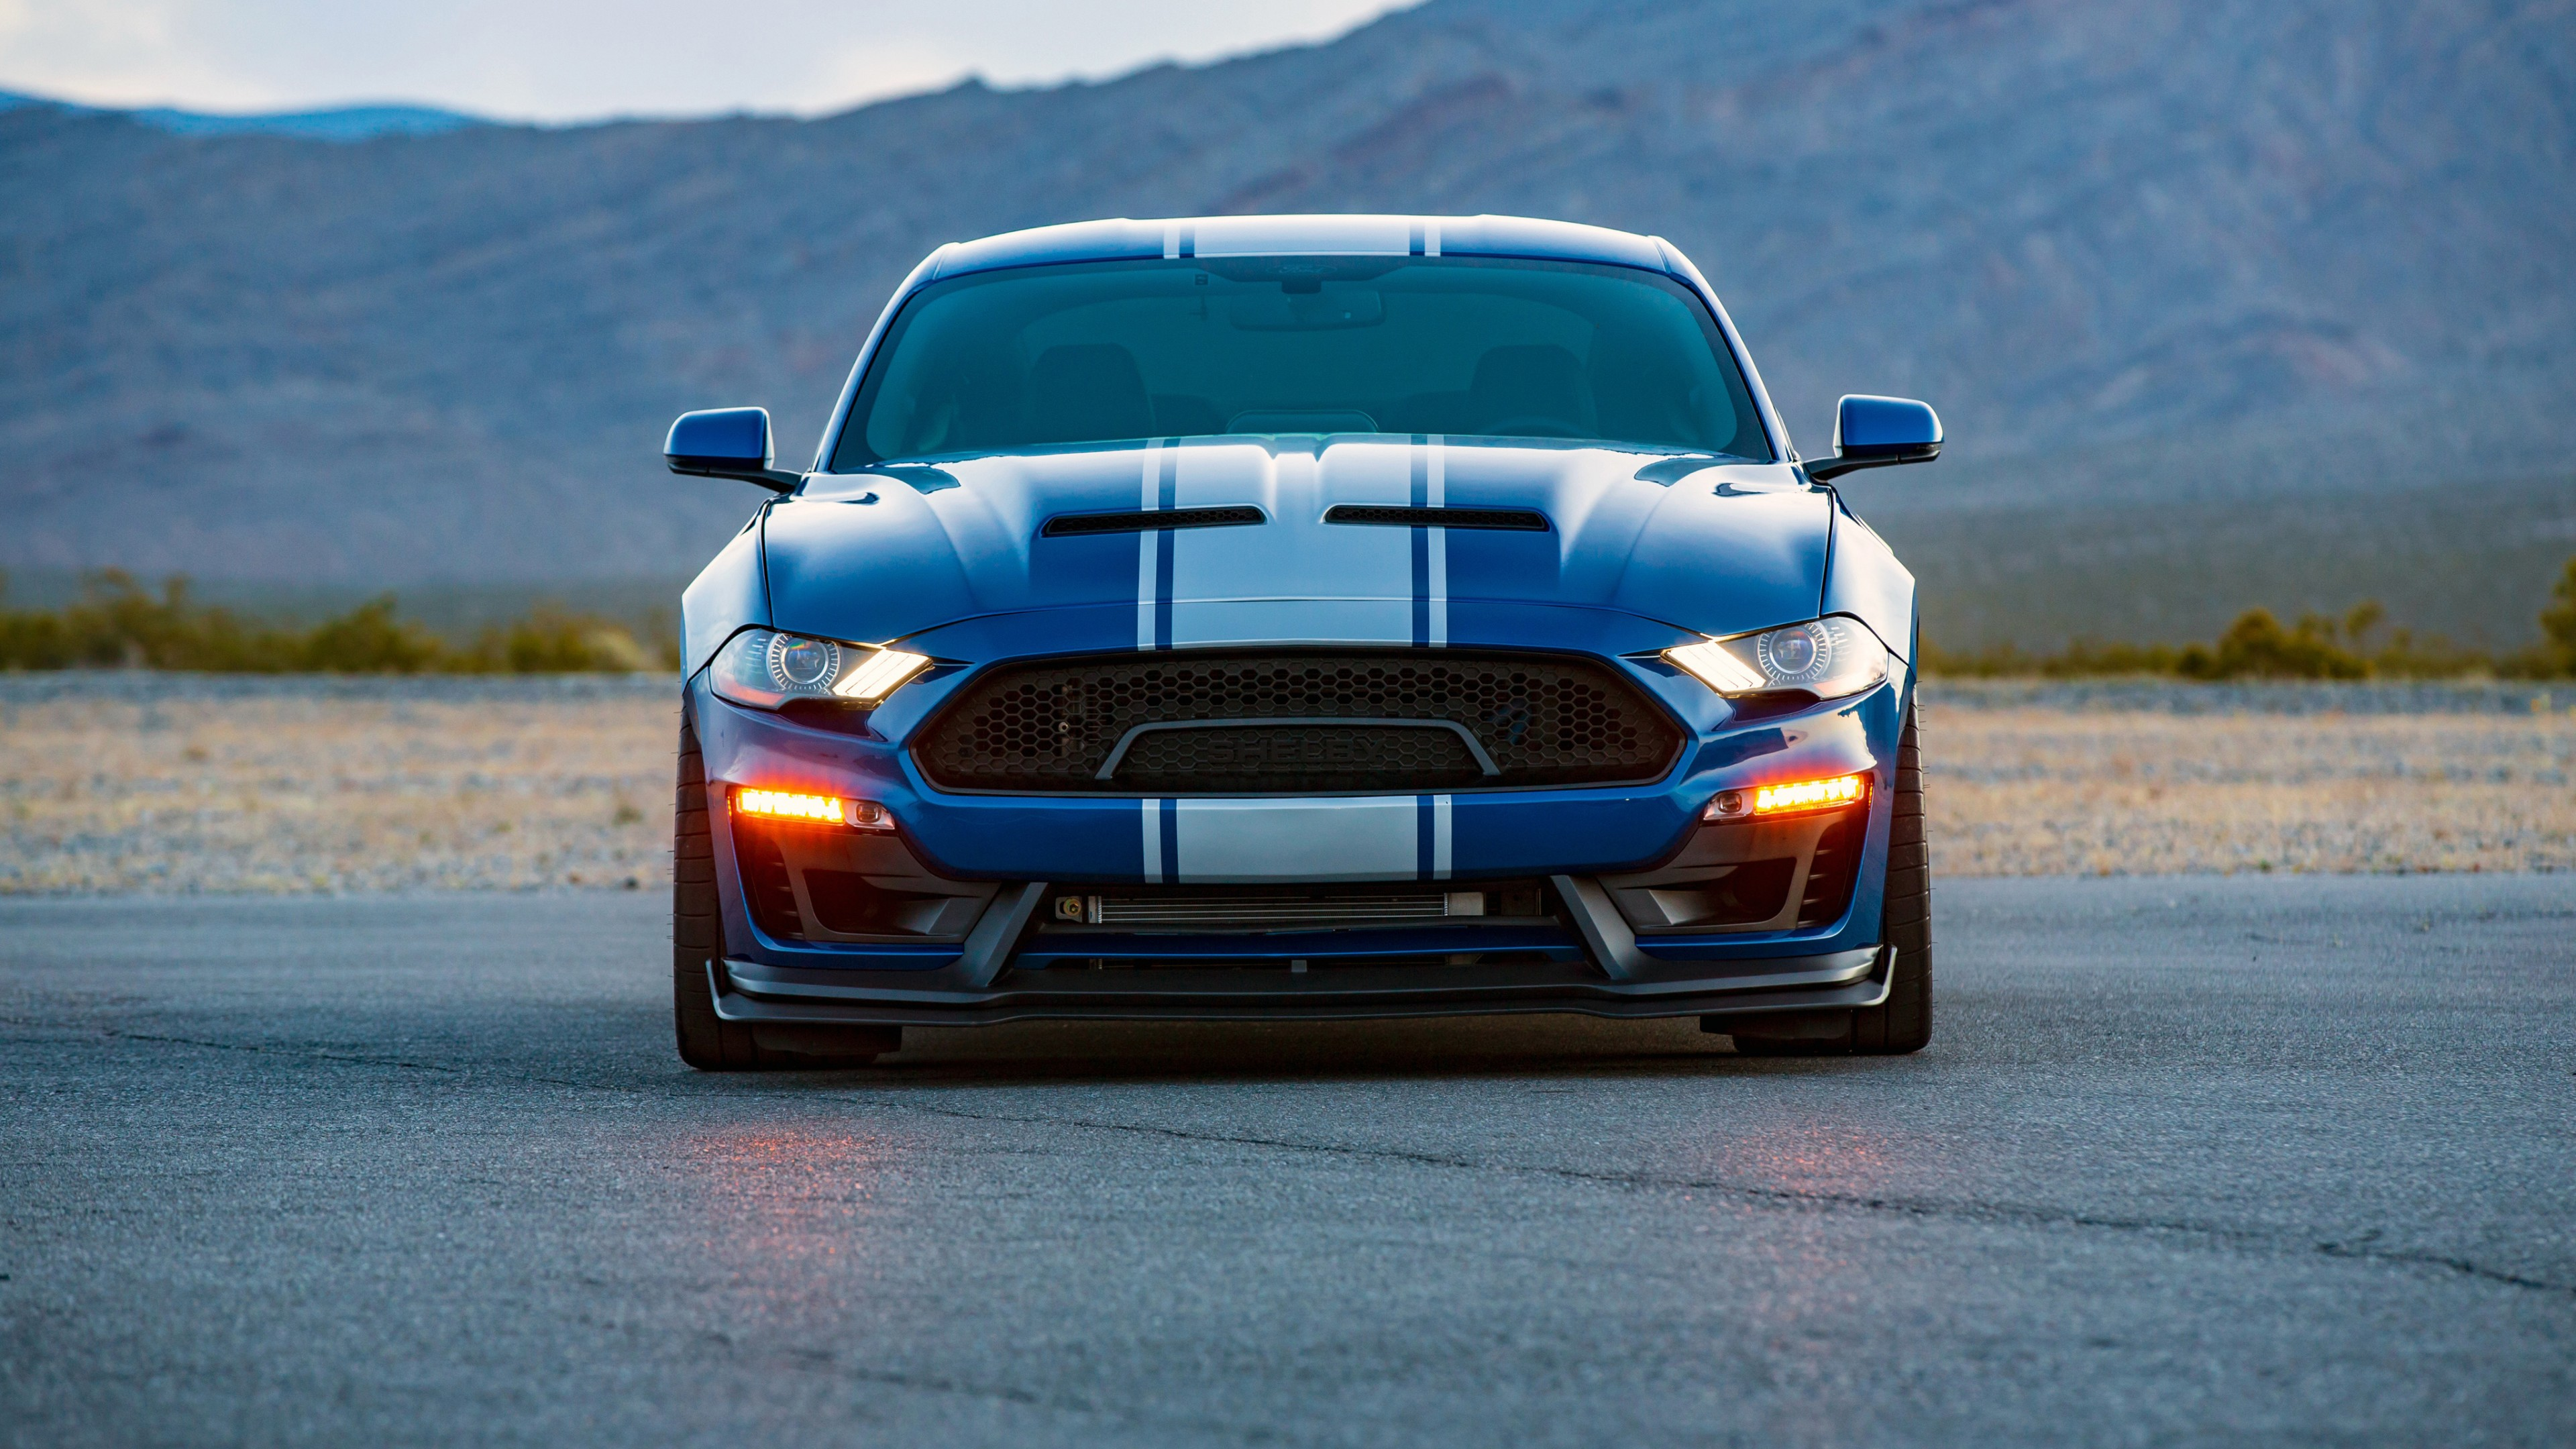 4k wide body super snake hd shelby ultra wallpapers 1080 2560 resolutions 2160 hdcarwallpapers 1600